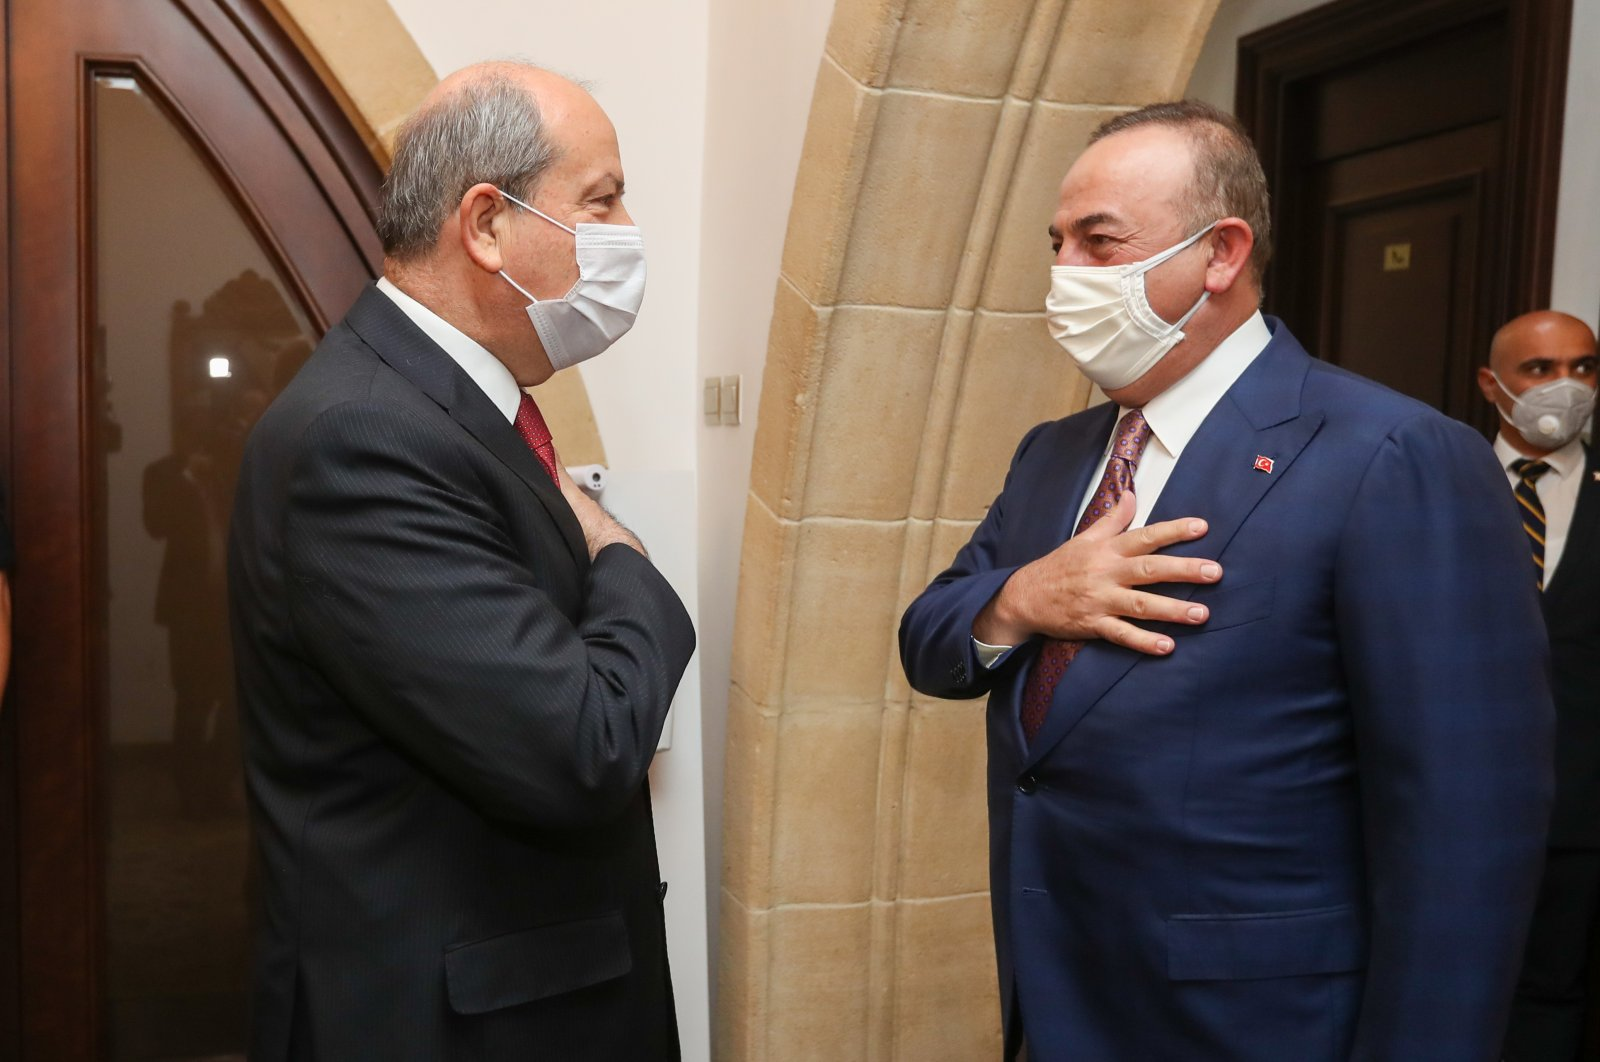 TRNC President Ersin Tatar receives Foreign Minister Mevlüt Çavuşoğlu in Nicosia, TRNC, Feb. 2, 2021. (AA Photo)